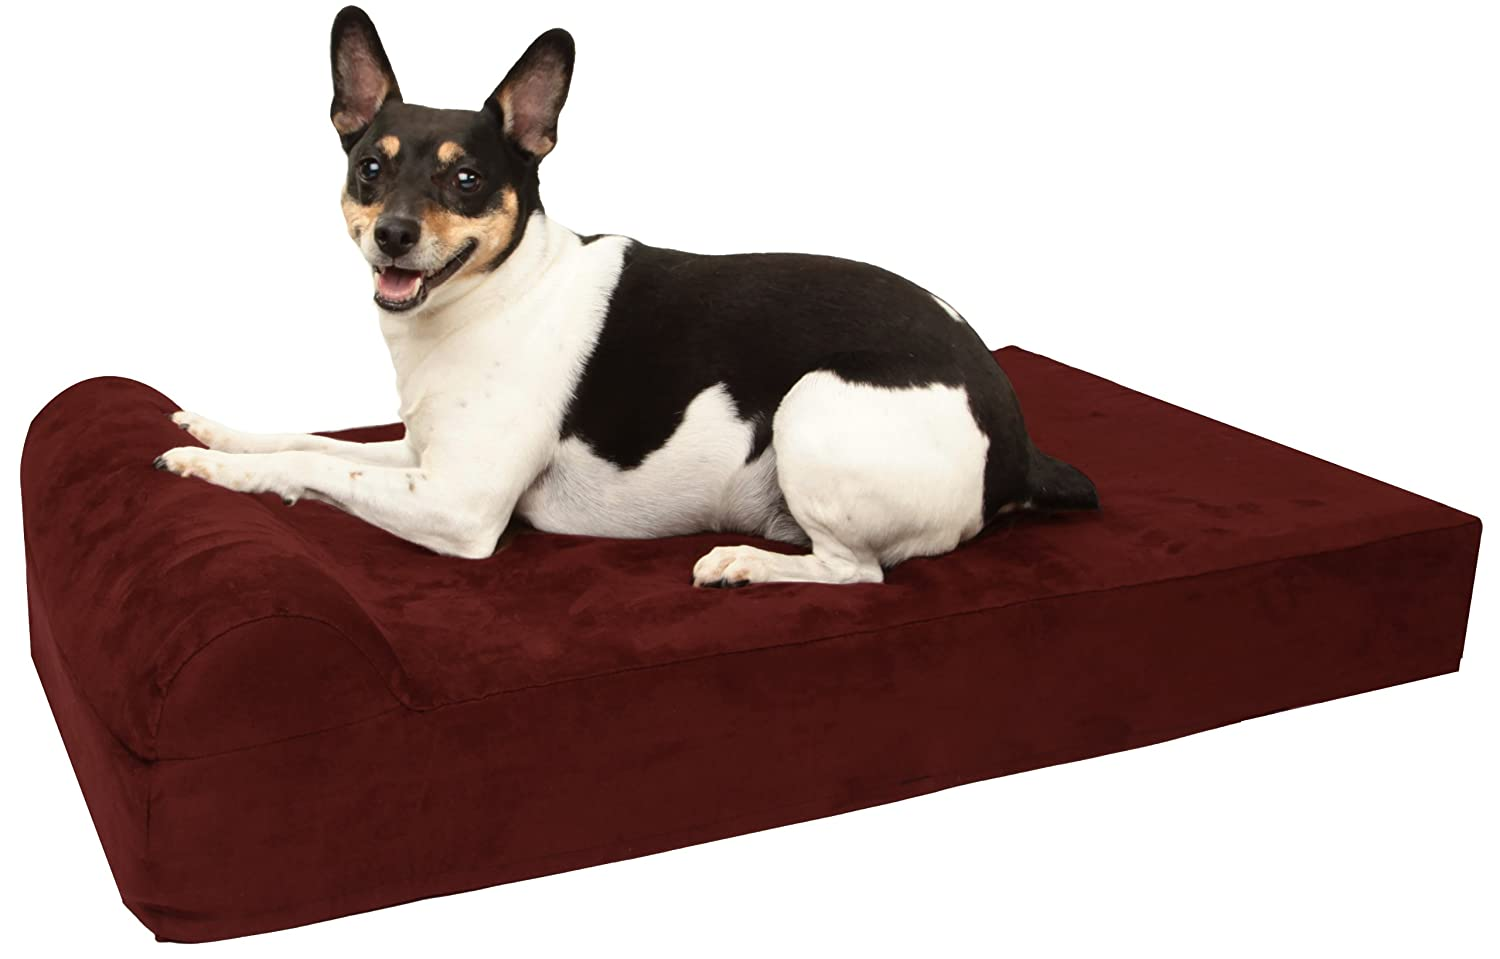 Burgundy Small (27 x 18) Burgundy Small (27 x 18) Barker Junior 4  Pillow Top Orthopedic Dog Bed with Headrest for Small Dogs 20-30 Pounds